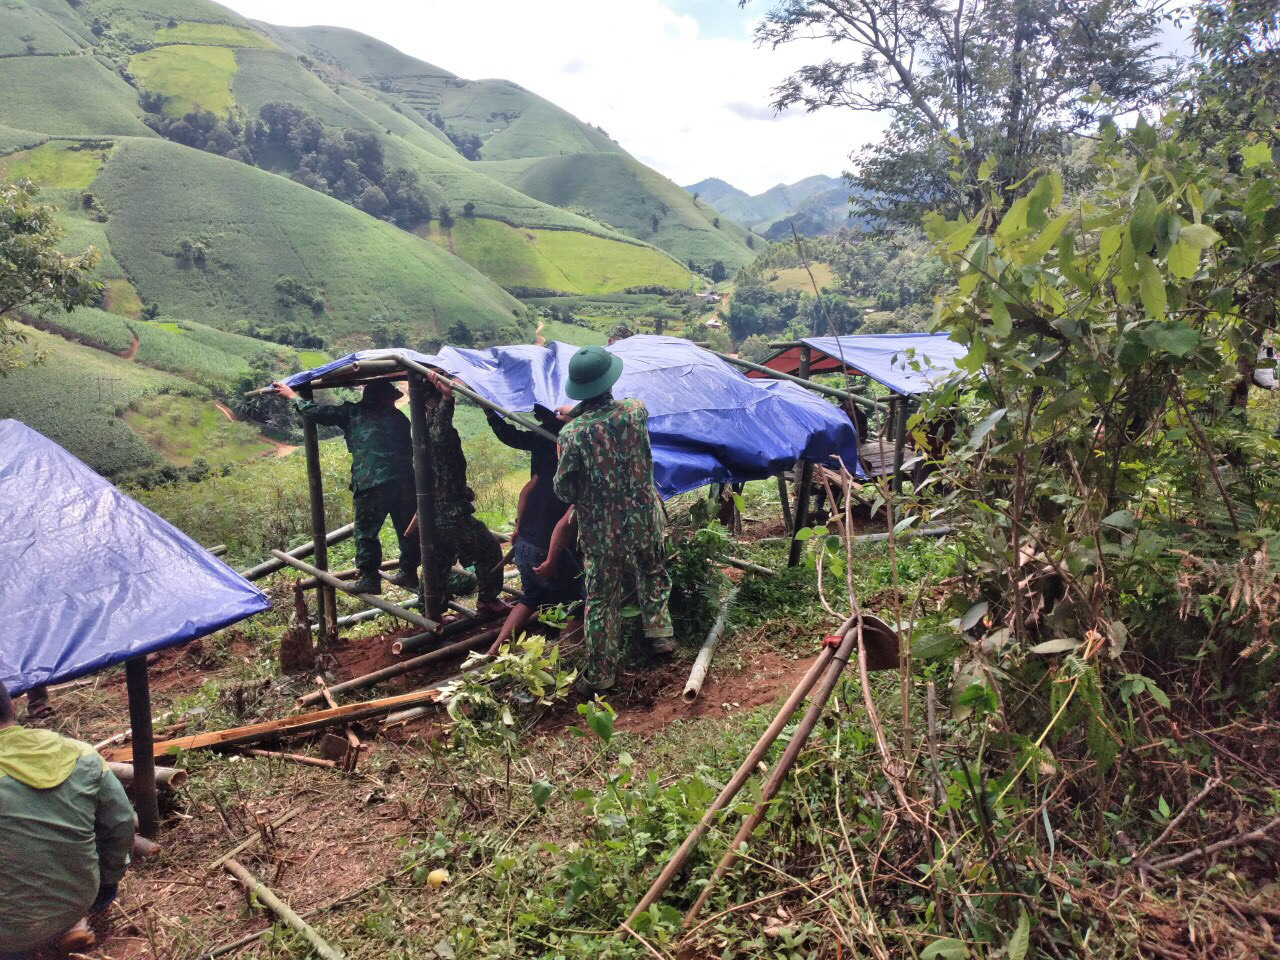 In Vietnam, authorities build mountainside bamboo lodges for COVID-19 quarantine